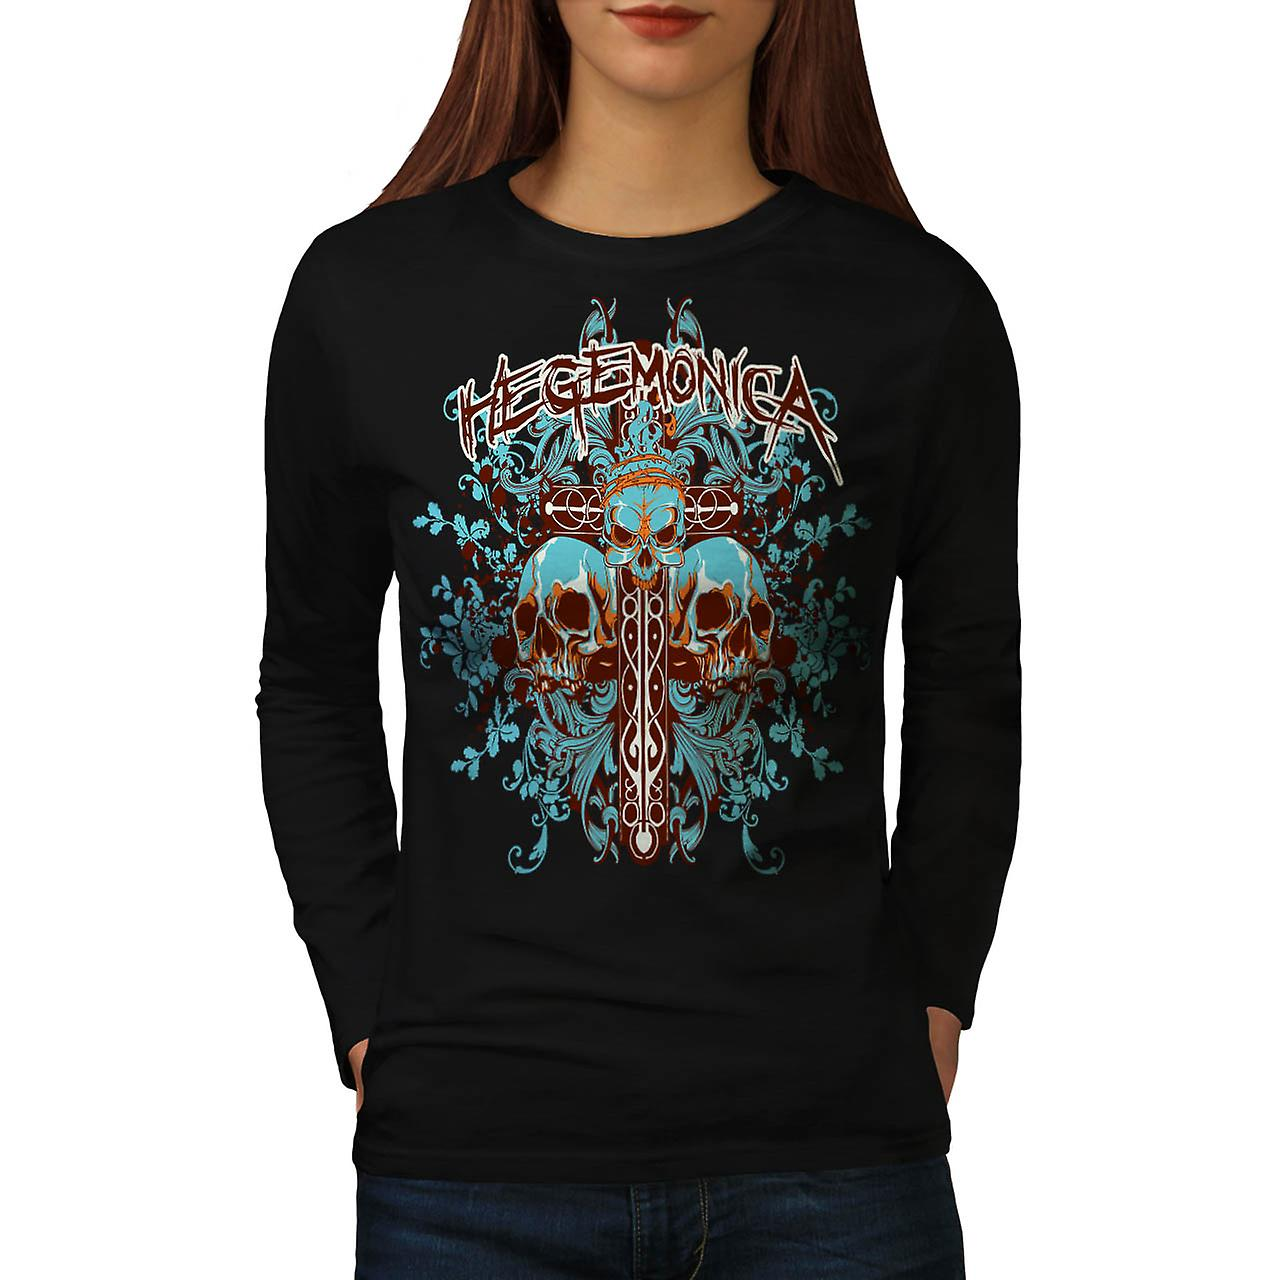 Crâne Grave Yard tombe Monster femme Black T-shirt manches longues | Wellcoda